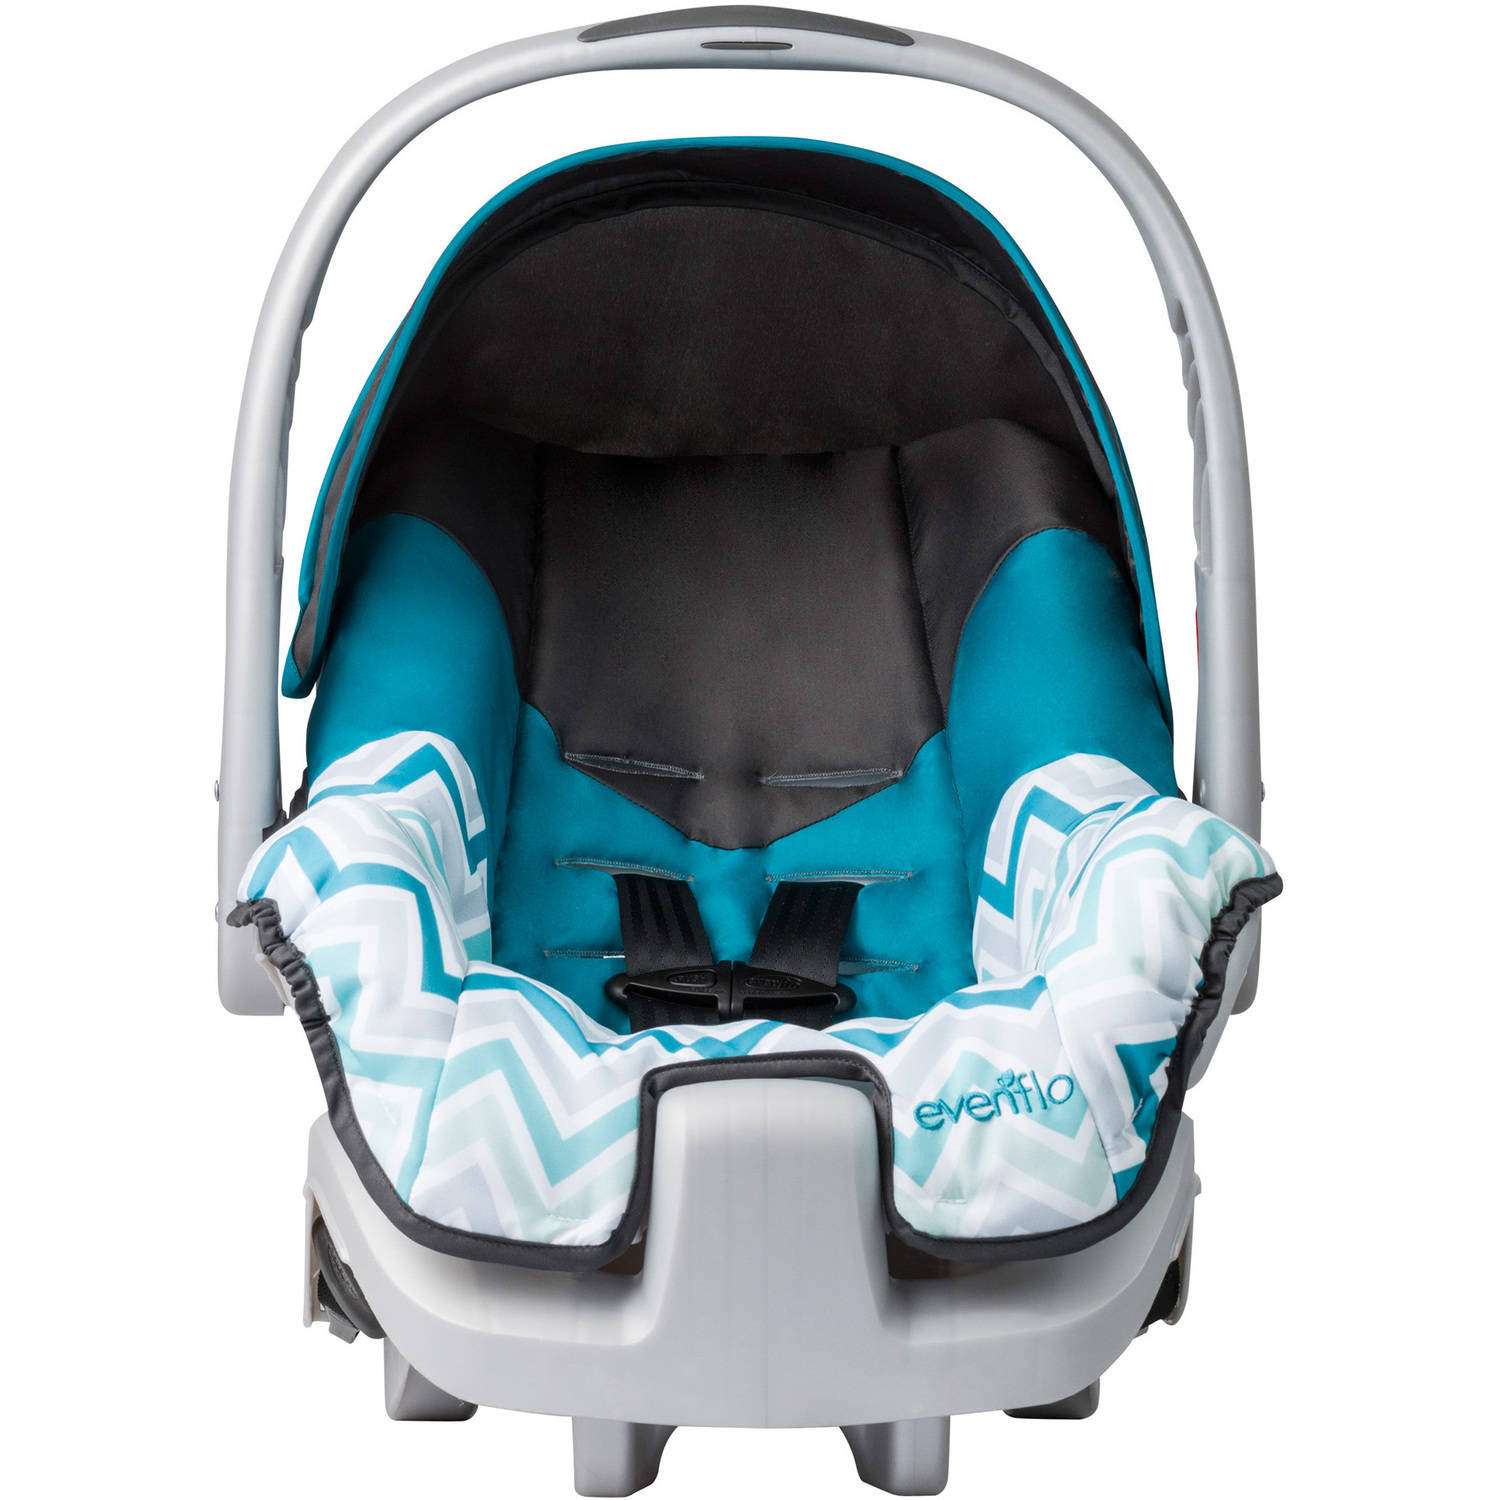 evenflo nurture infant car seat blake ebay. Black Bedroom Furniture Sets. Home Design Ideas